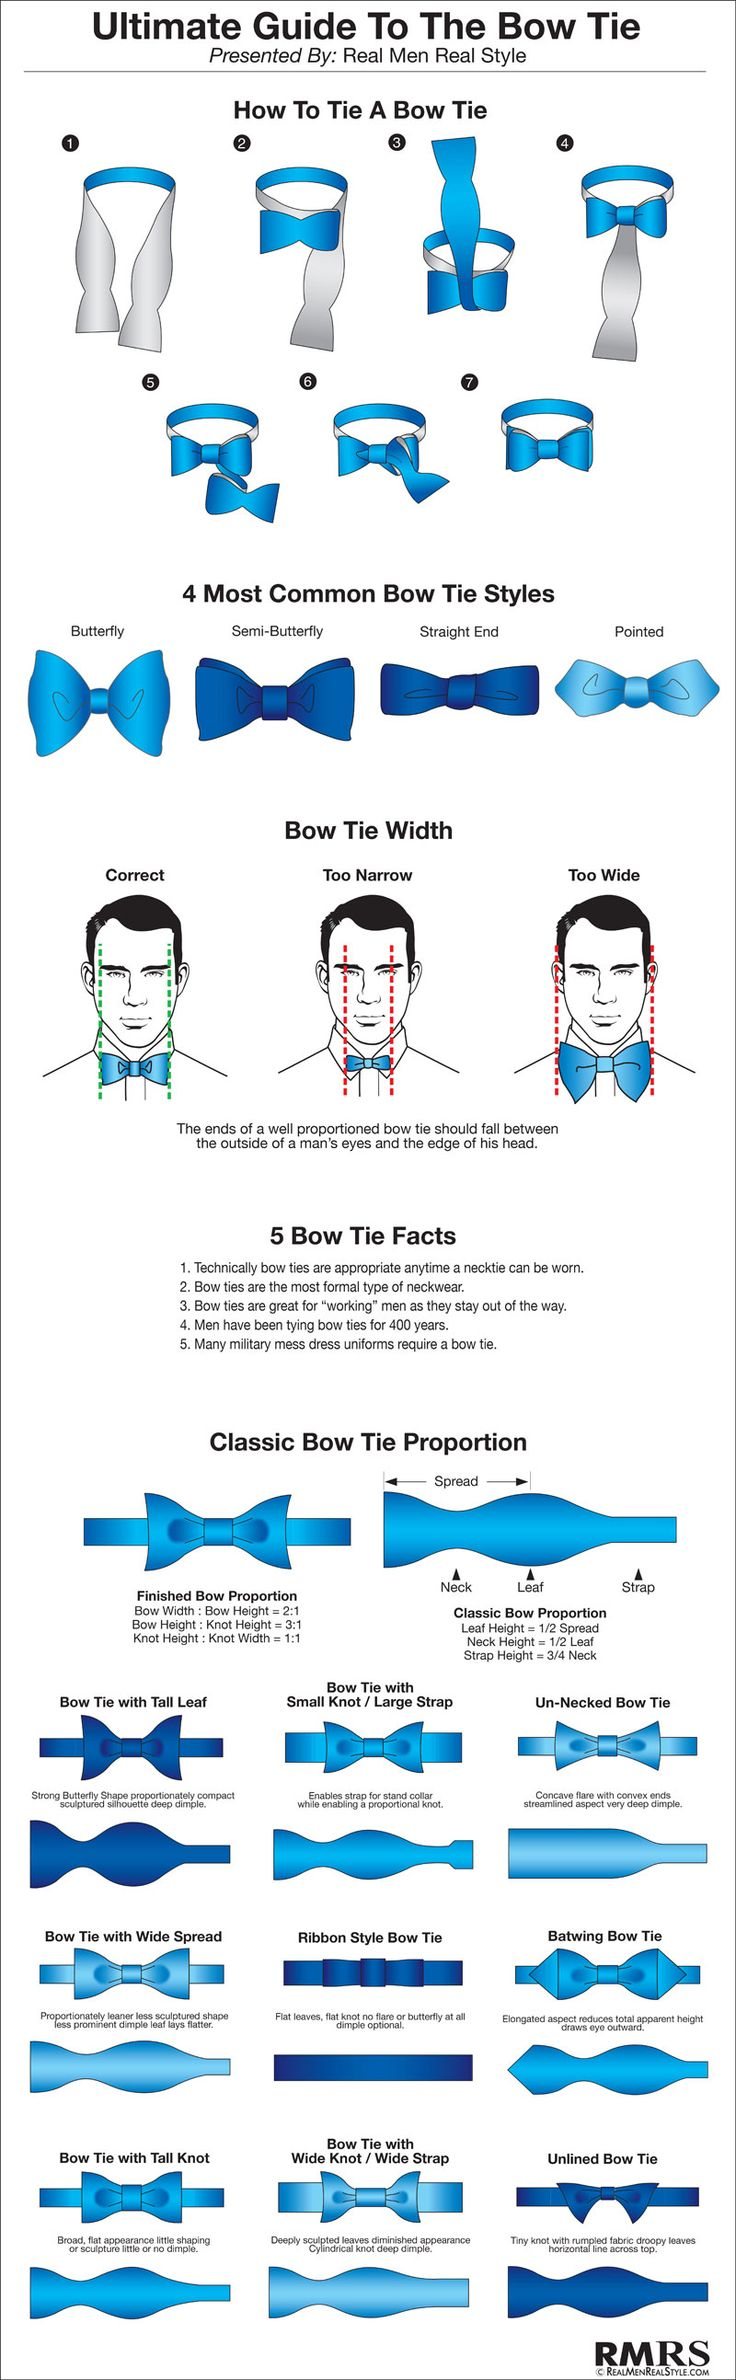 Ultimate Guide To The Bow-Tie | Bow Tie Infographic (via @Antonio Centeno)